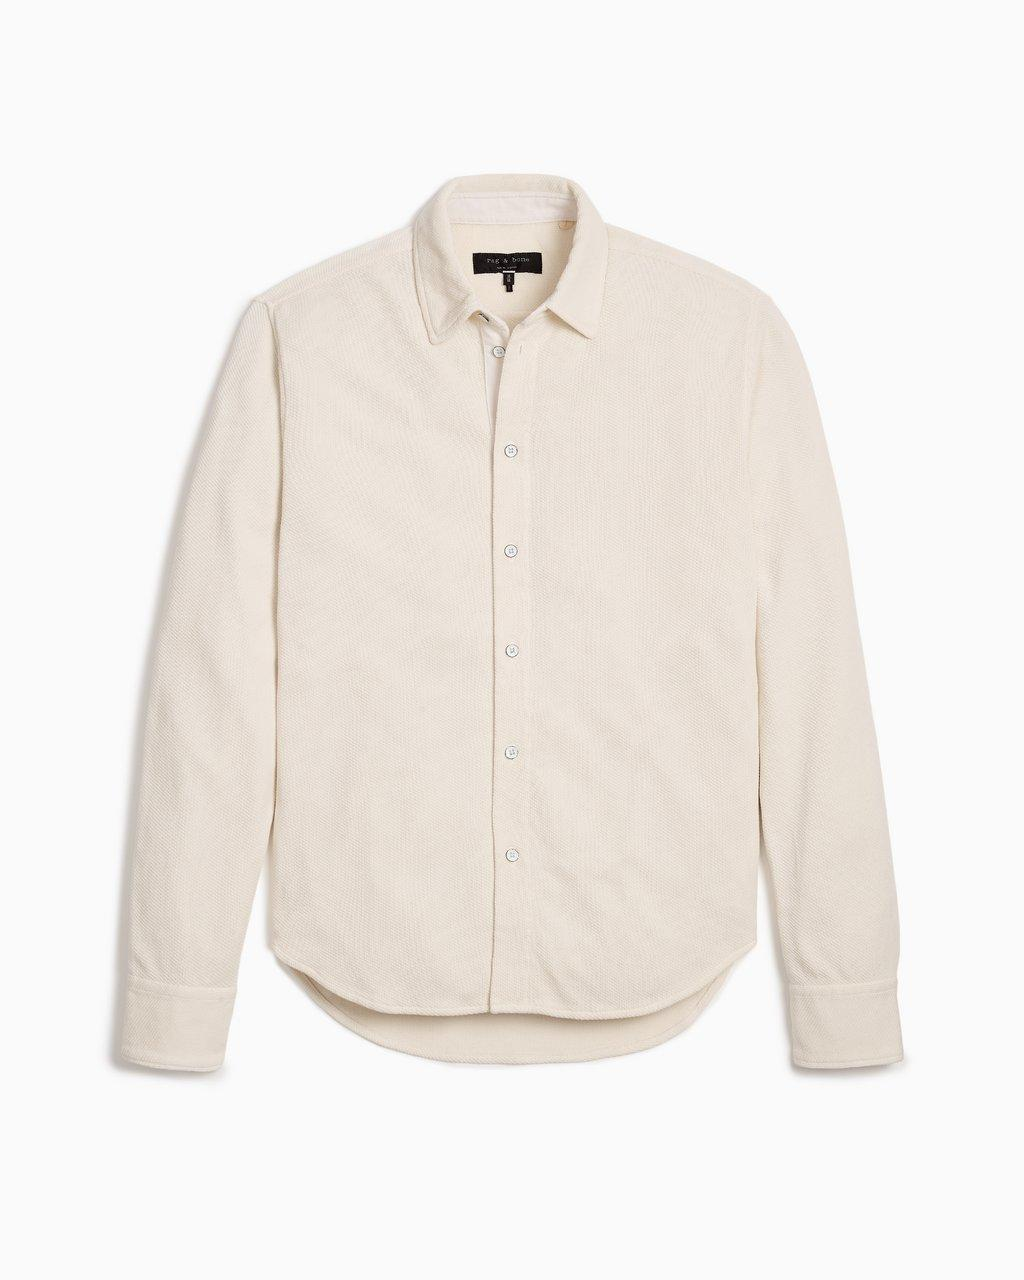 Baron Knit Button-Down